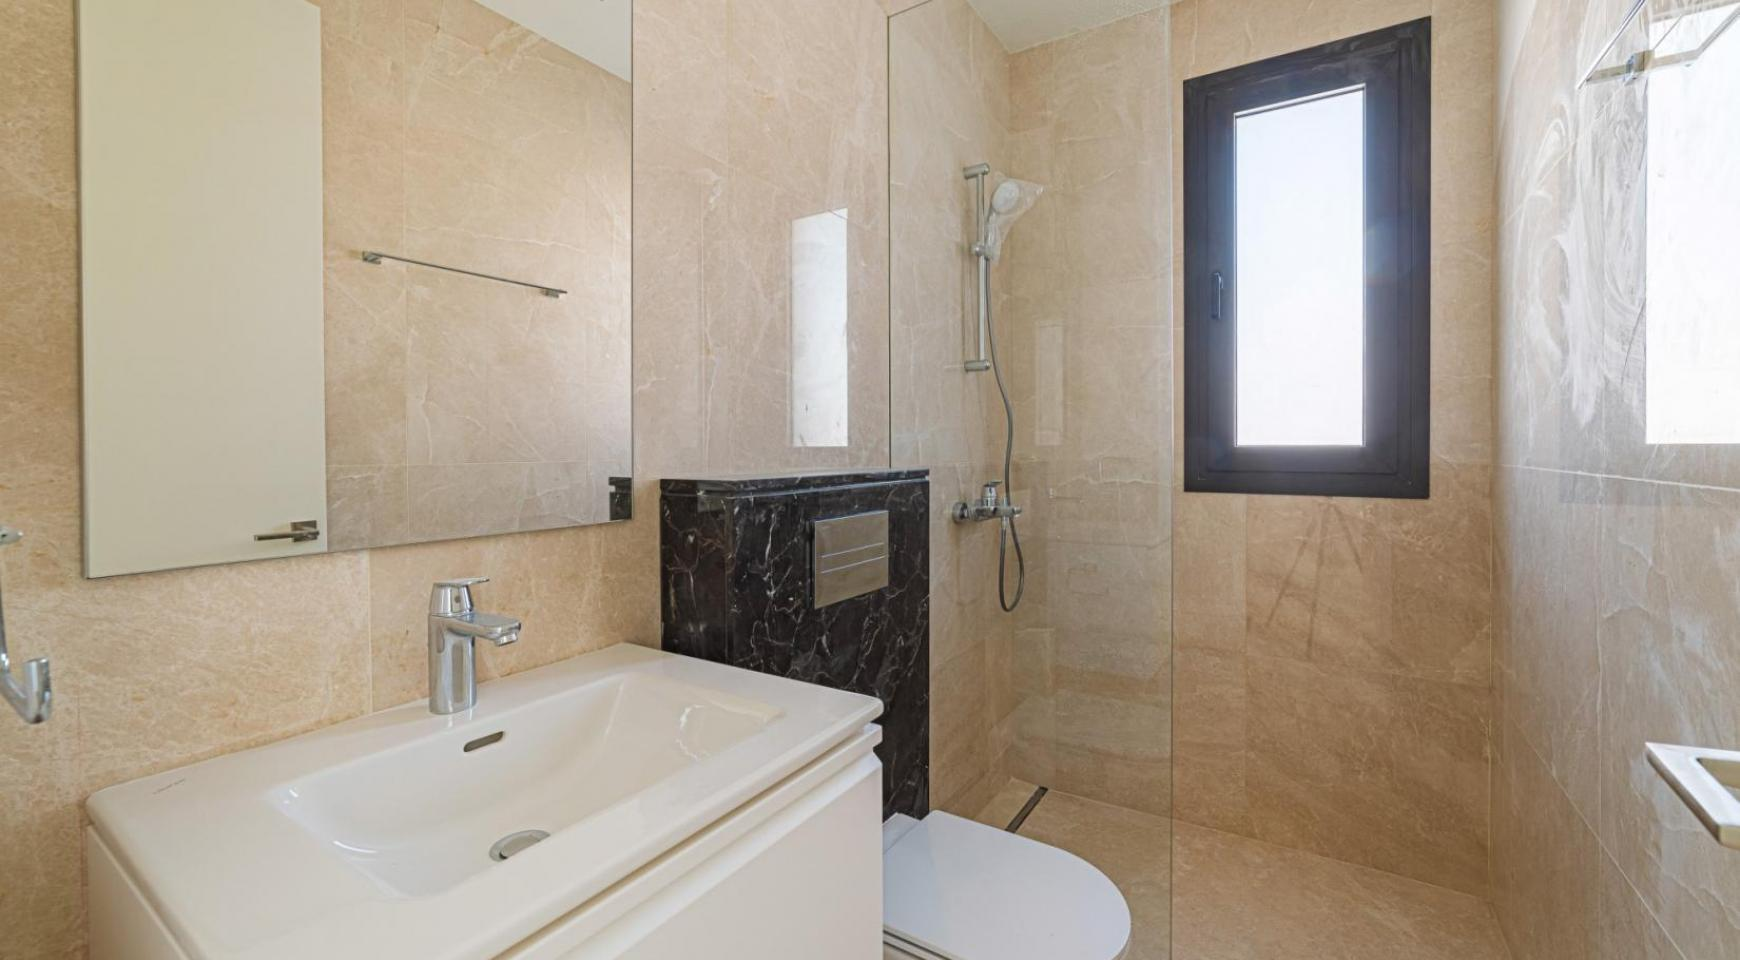 HORTENSIA RESIDENCE, Apt. 101. 2 Bedroom Apartment  in a New Complex near the Sea - 25